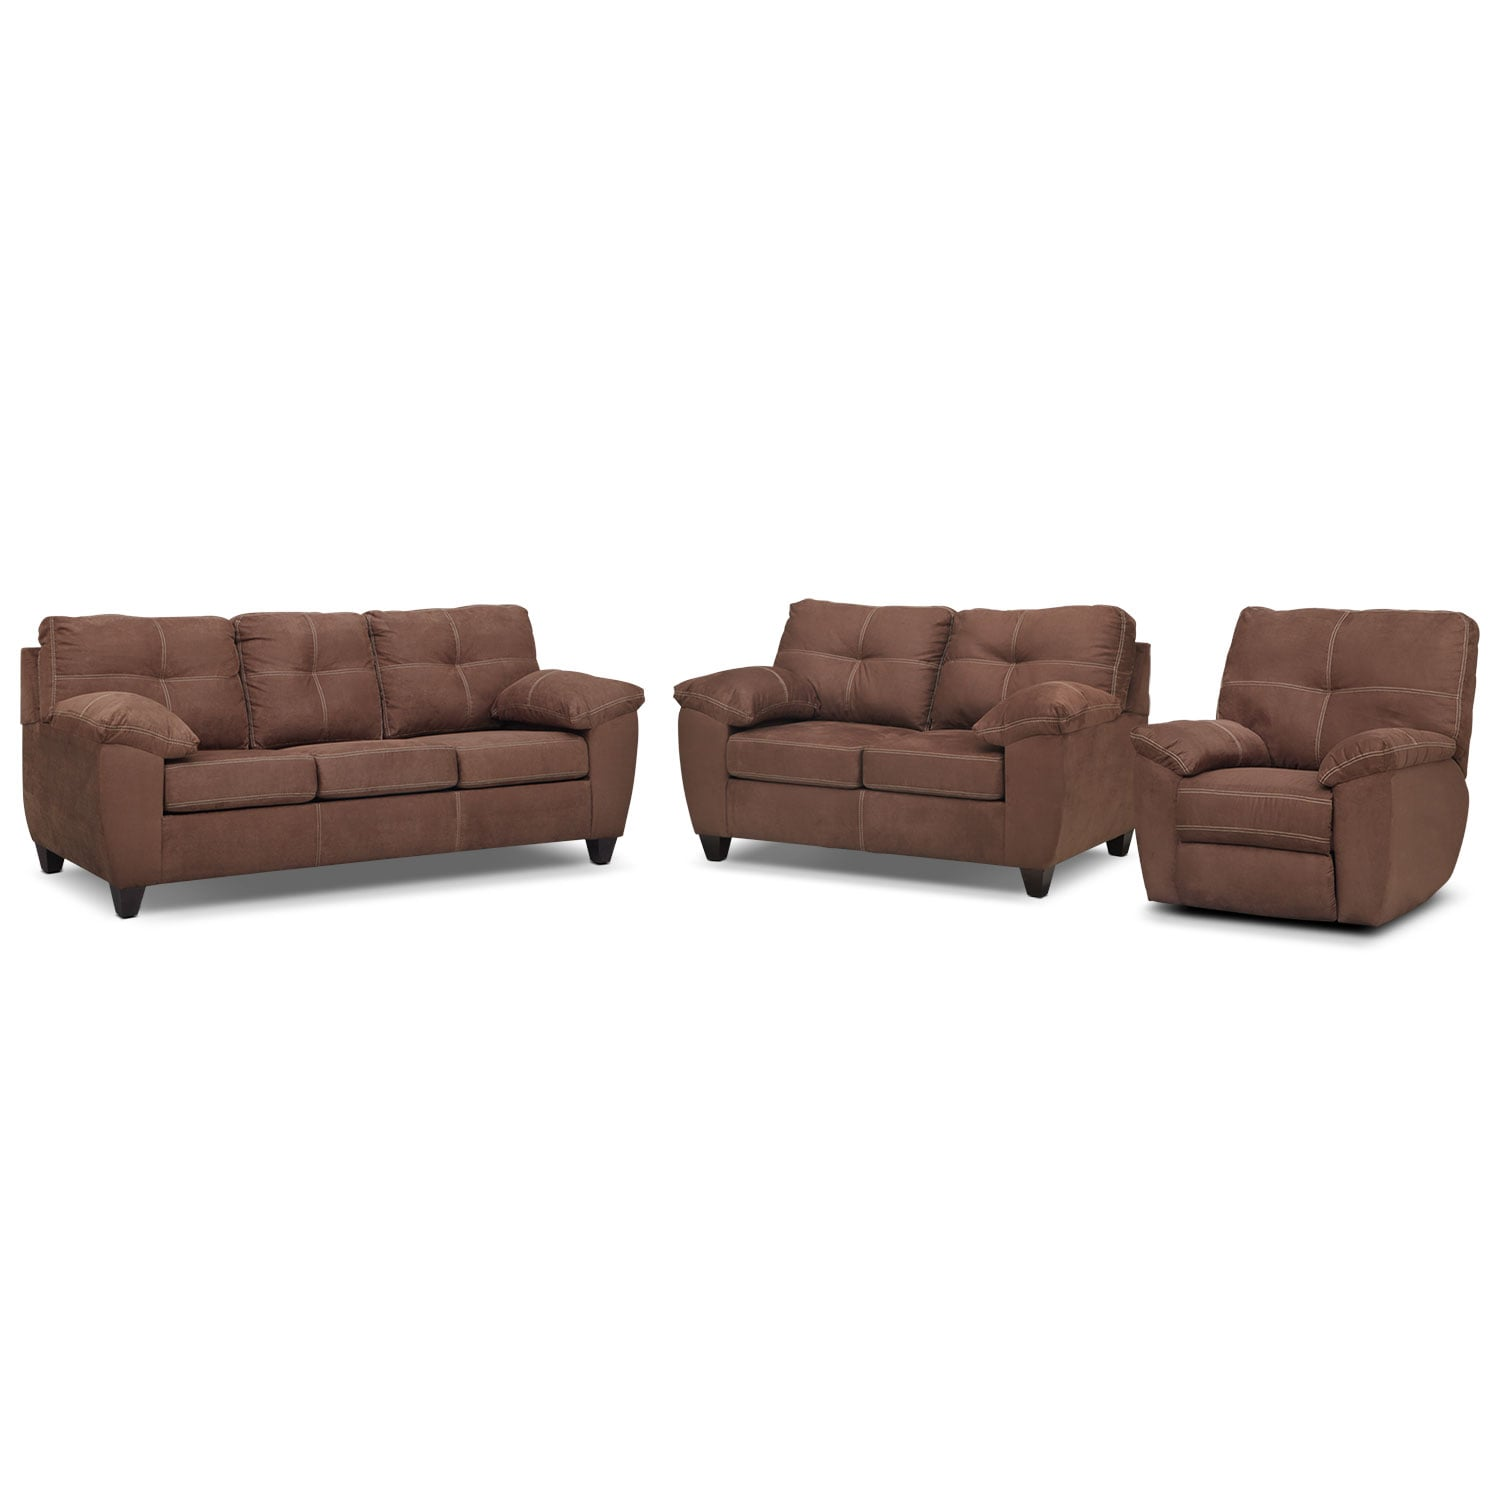 Living Room Furniture - Rialto Sofa, Loveseat and Glider Recliner Set - Coffee